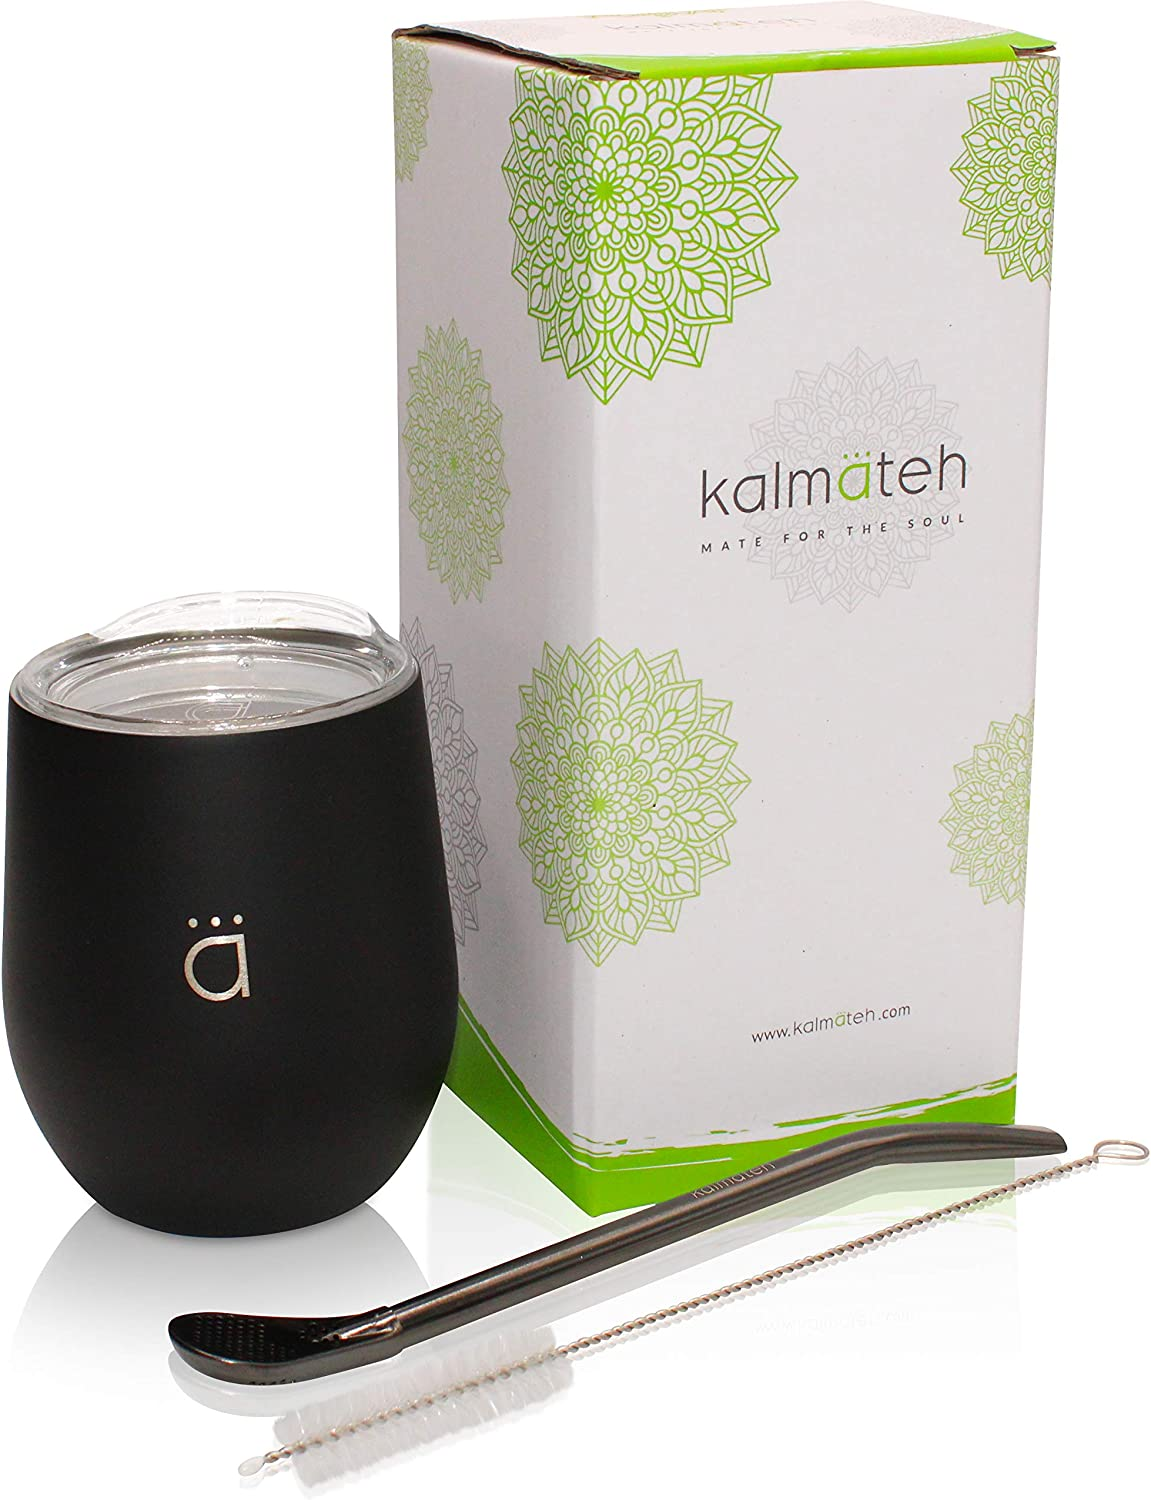 Kalmateh Yerba Mate Gourd - Modern 8 oz Mate Cup with BPA Free Lid- Double Walled 18/8 Stainless Steel - Includes Bombilla and Cleaning Brush